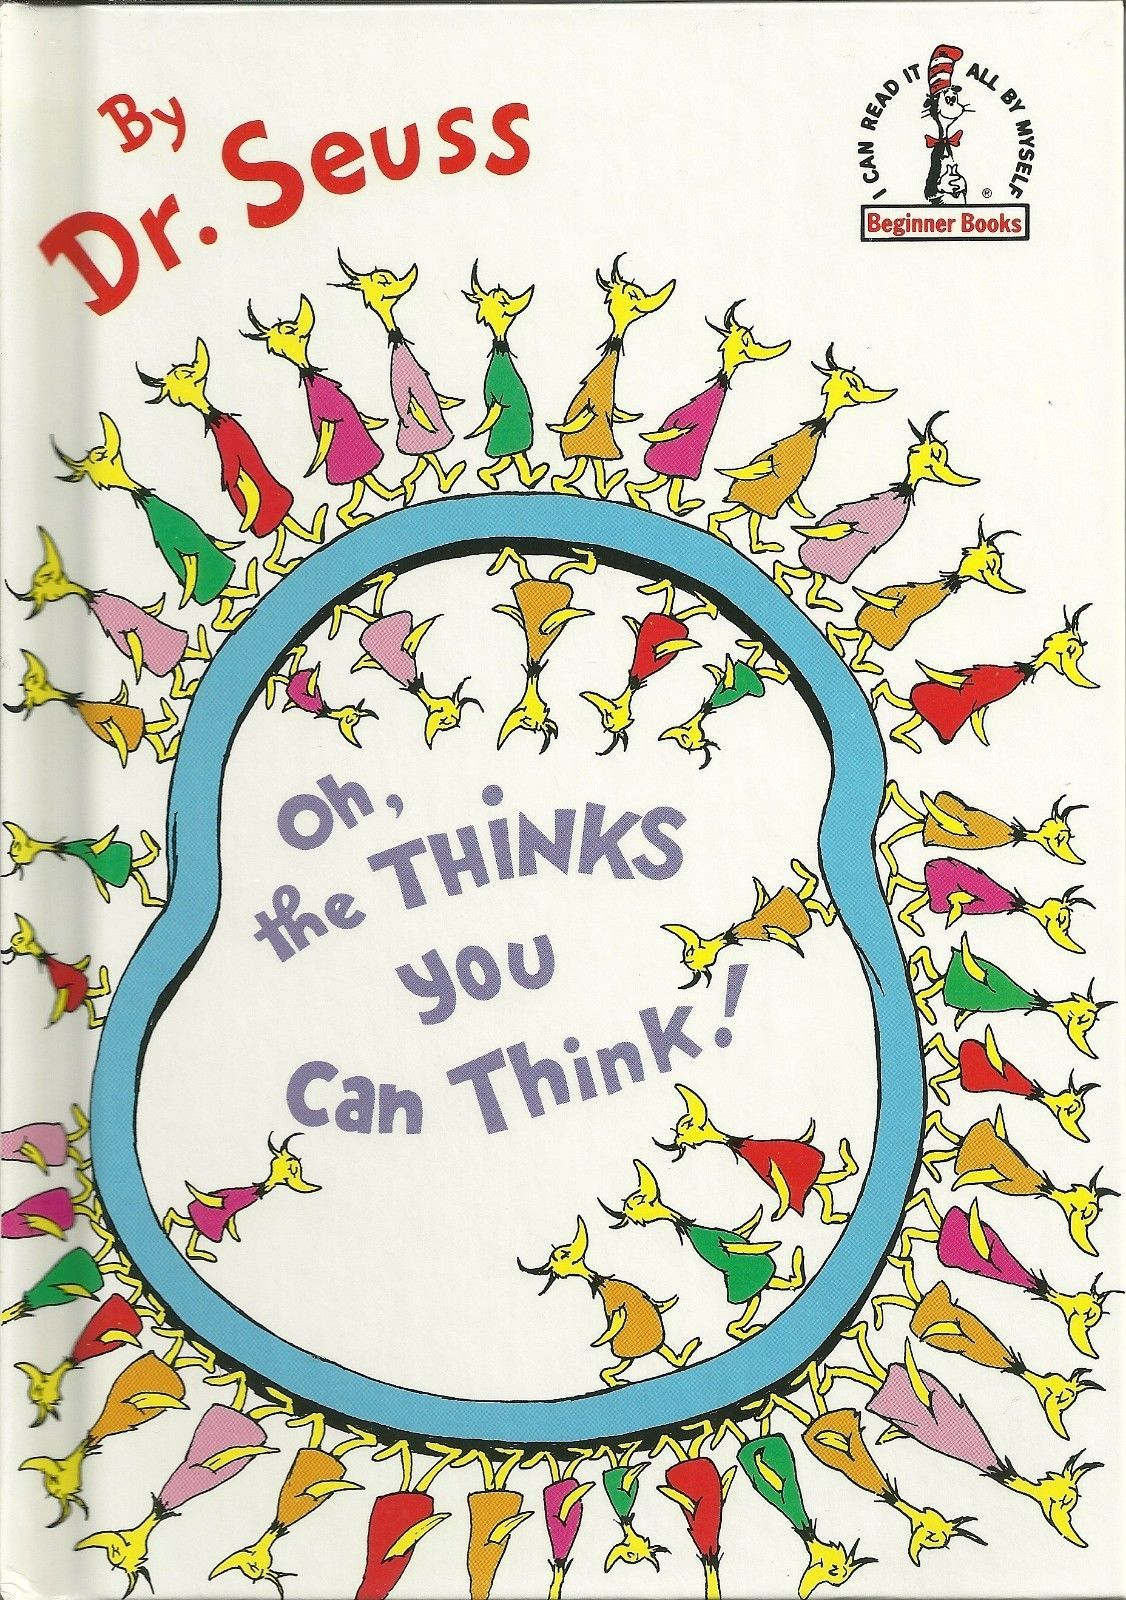 Oh The Thinks You Can Think by Dr Seuss Hardcover Book 0394831292 | eBay